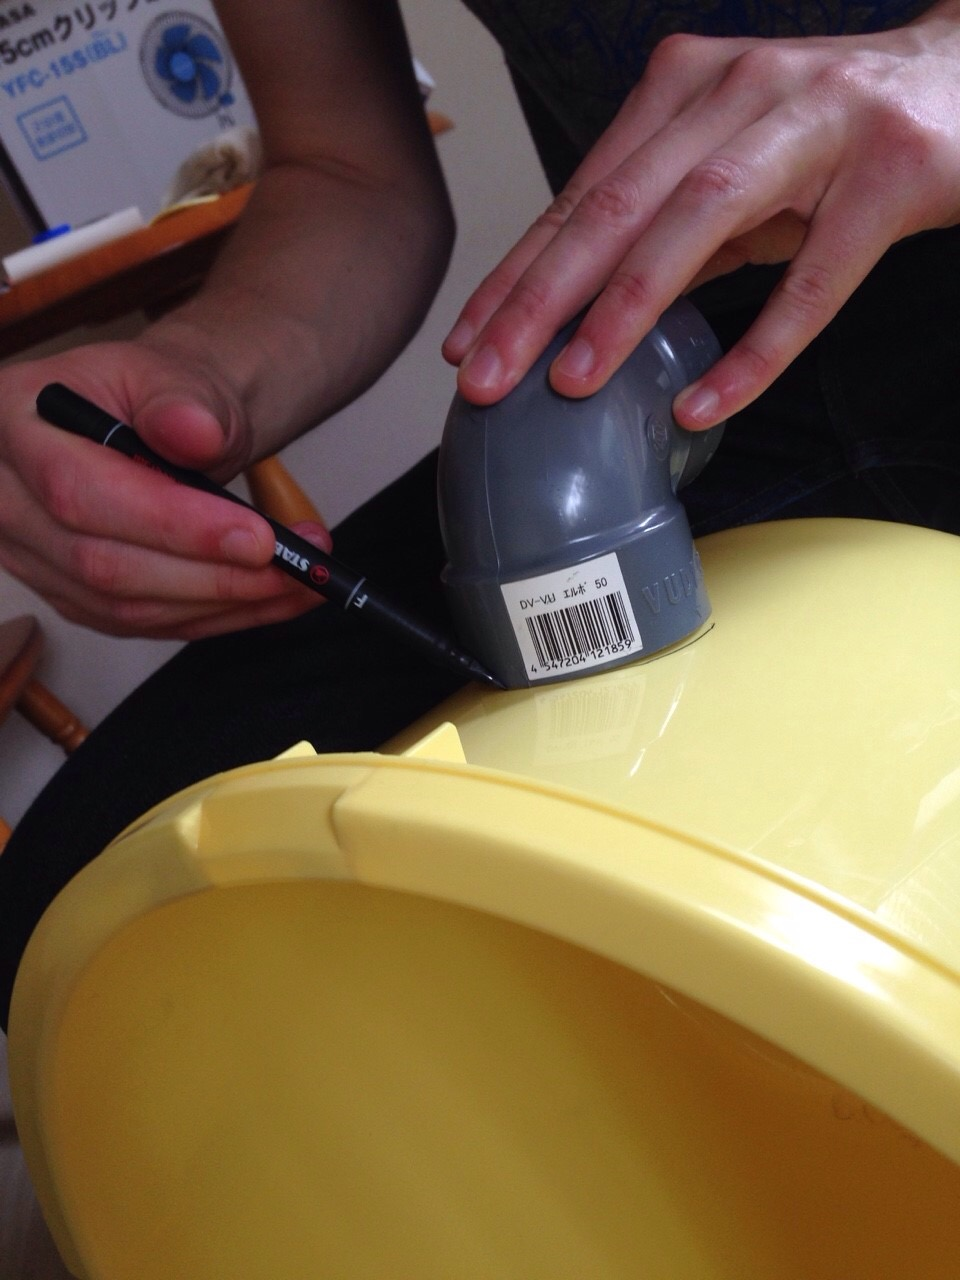 Next trace the shape of your PVC elbows on the sides of the bucket.